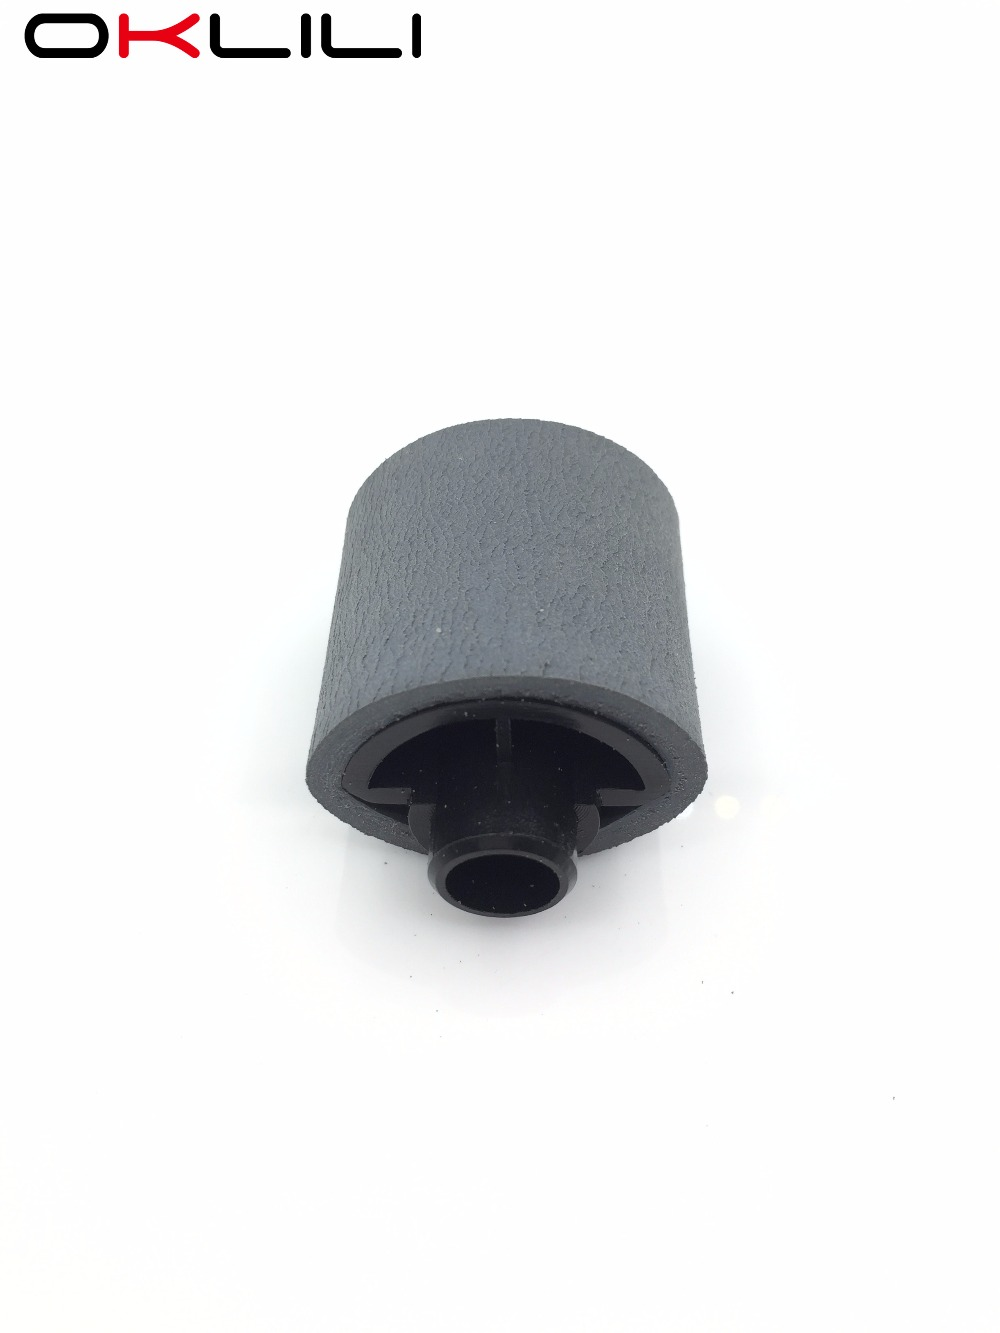 10PCX JC72-01231A Pickup Roller for Samsung ML1510 1710 1740 1750 2250 SCX4016 4116 4100 4200 4220 4300 4500 4520 4720 SF560 565 heat upper pressure roller for samsung scx 4100 scx 4200 scx 4300 scx 4100 4300 4200upper fuser roller on sale